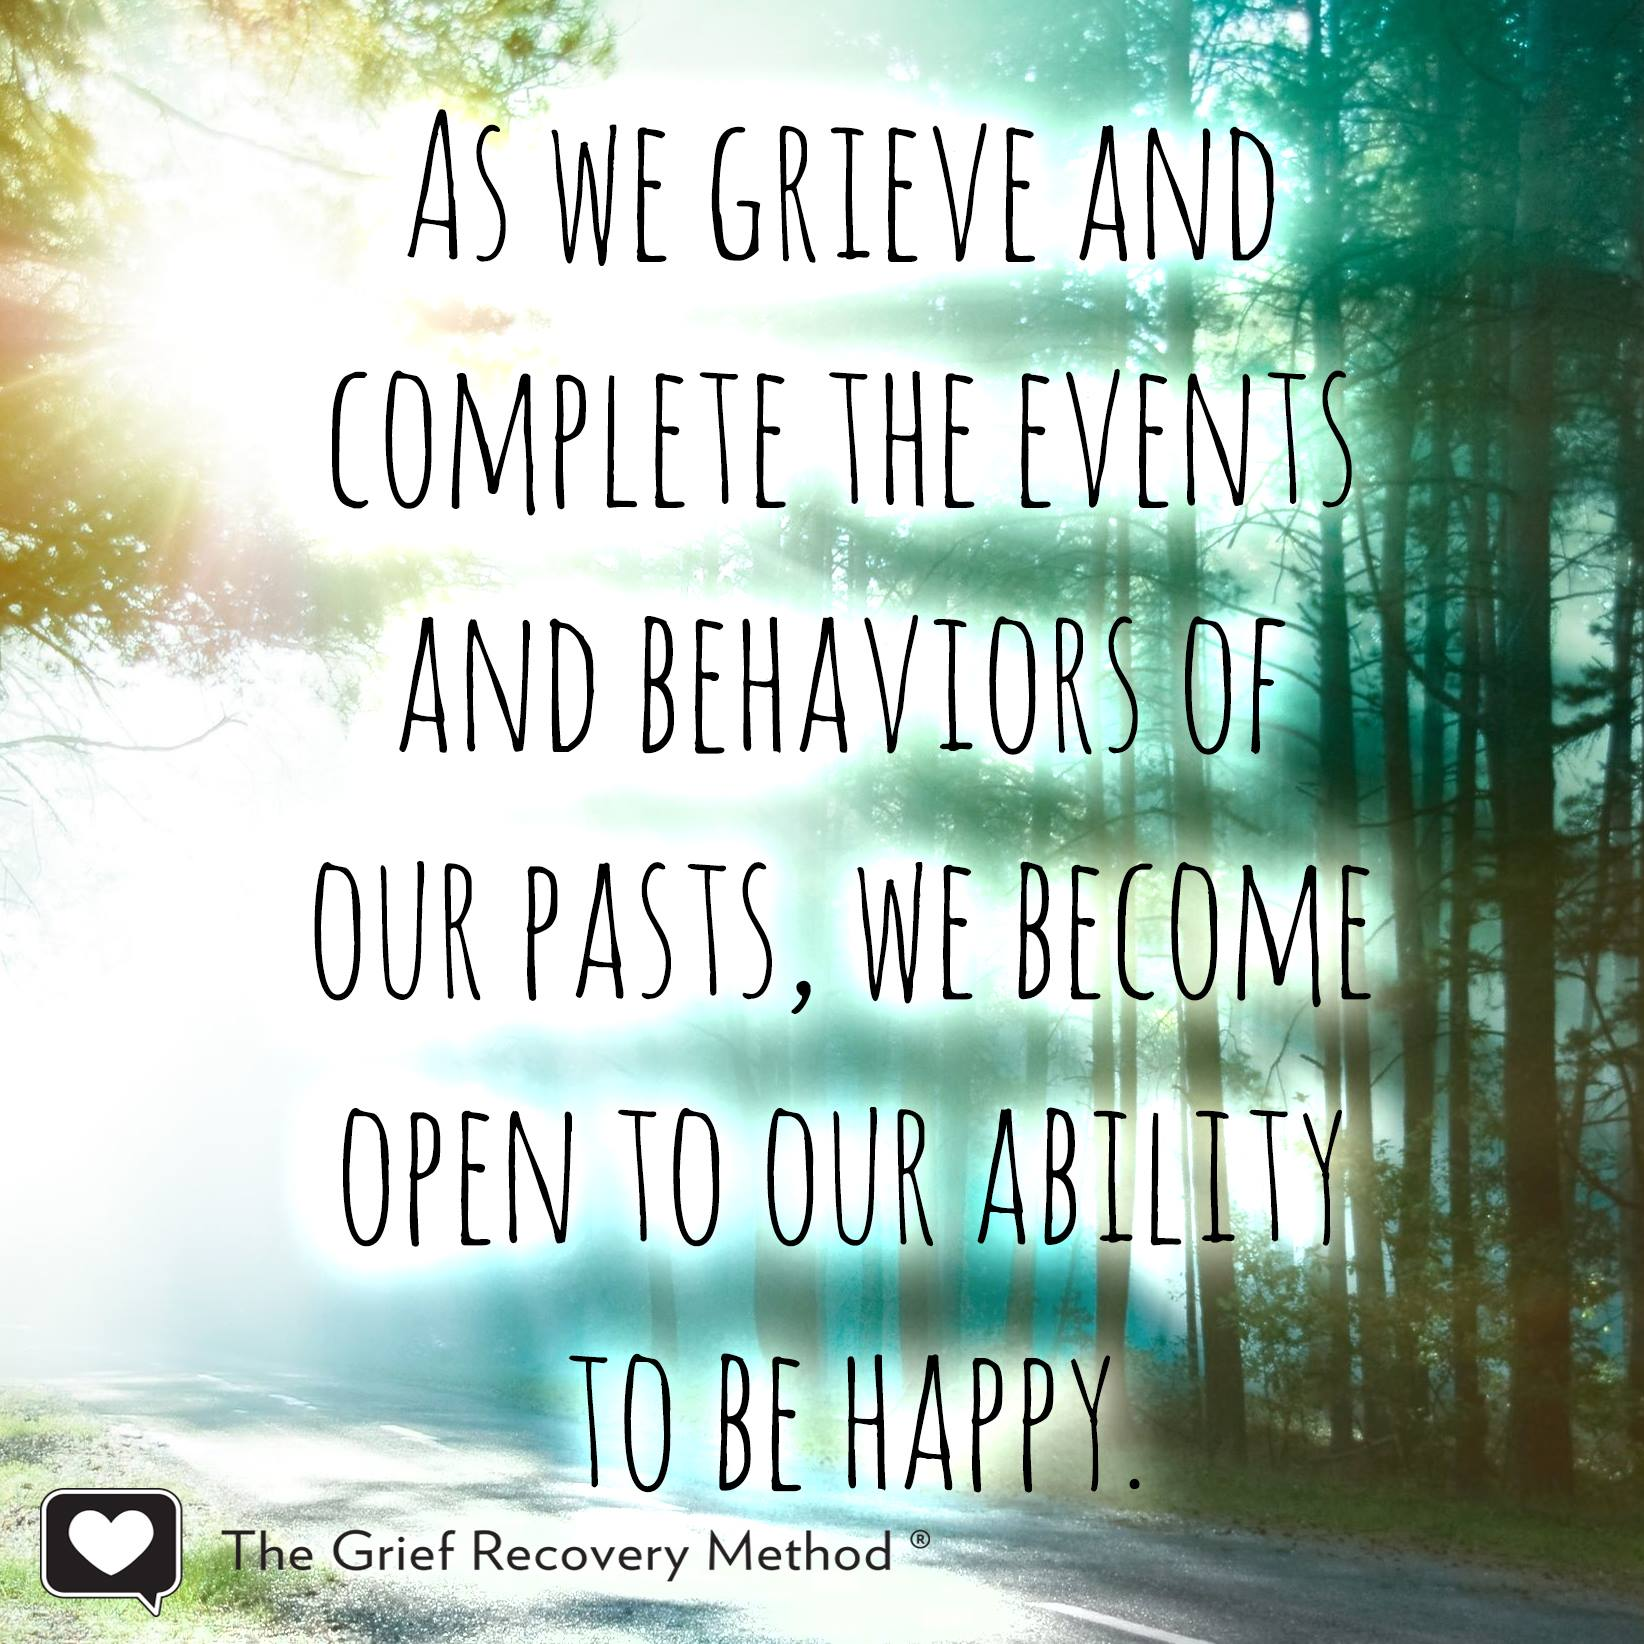 grieve complete behavior event past open ability to be happy